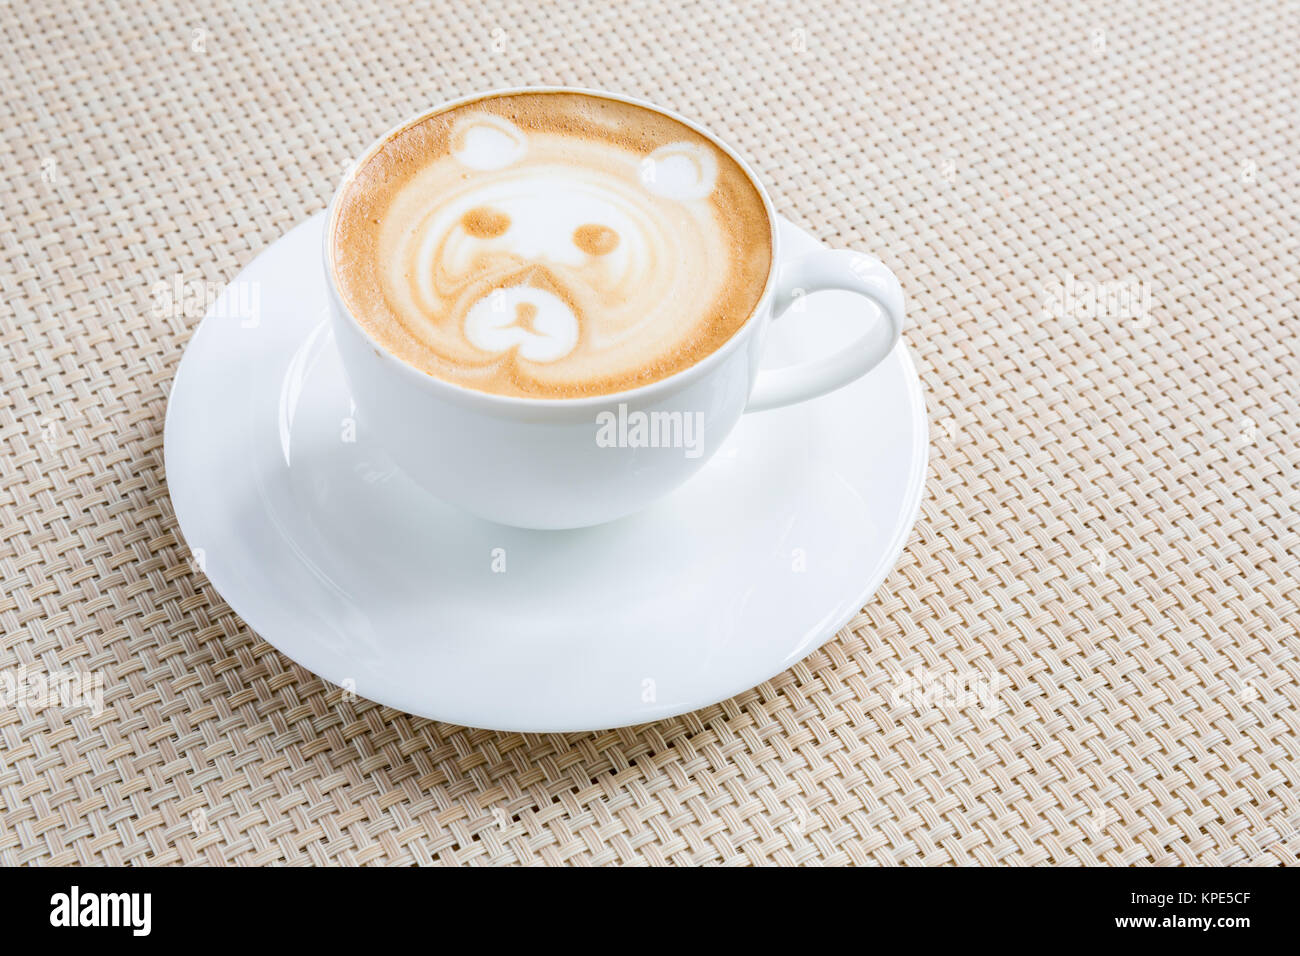 Coffee latte art - Stock Image